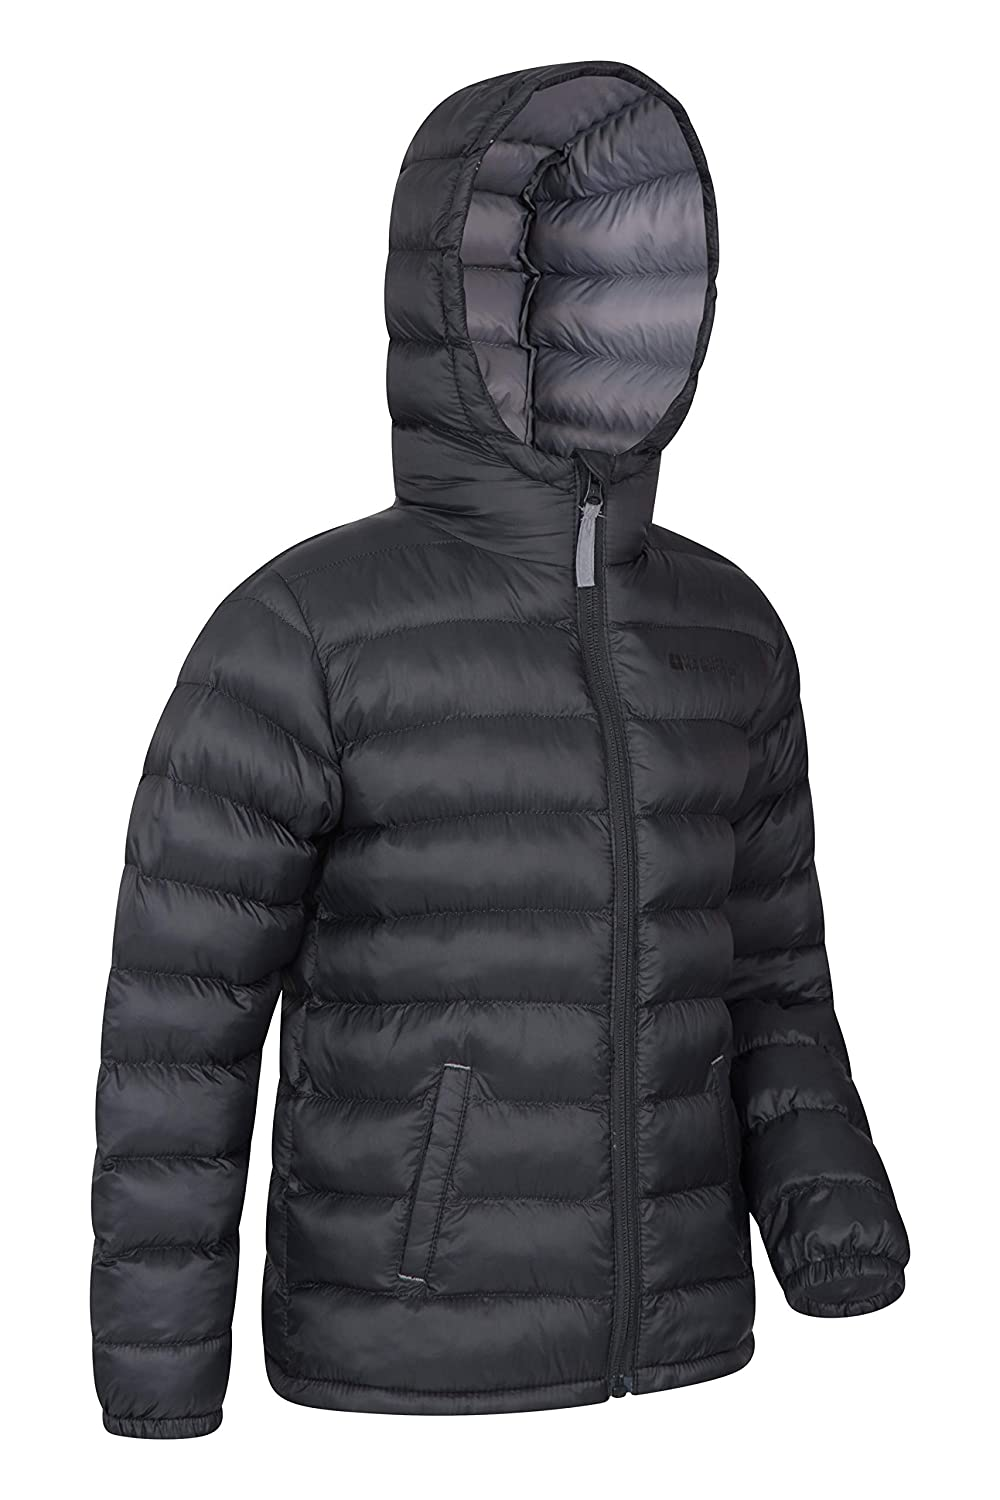 0f75b6af9 Mountain Warehouse Seasons Boys Padded Jacket - Water Resistant Rain ...